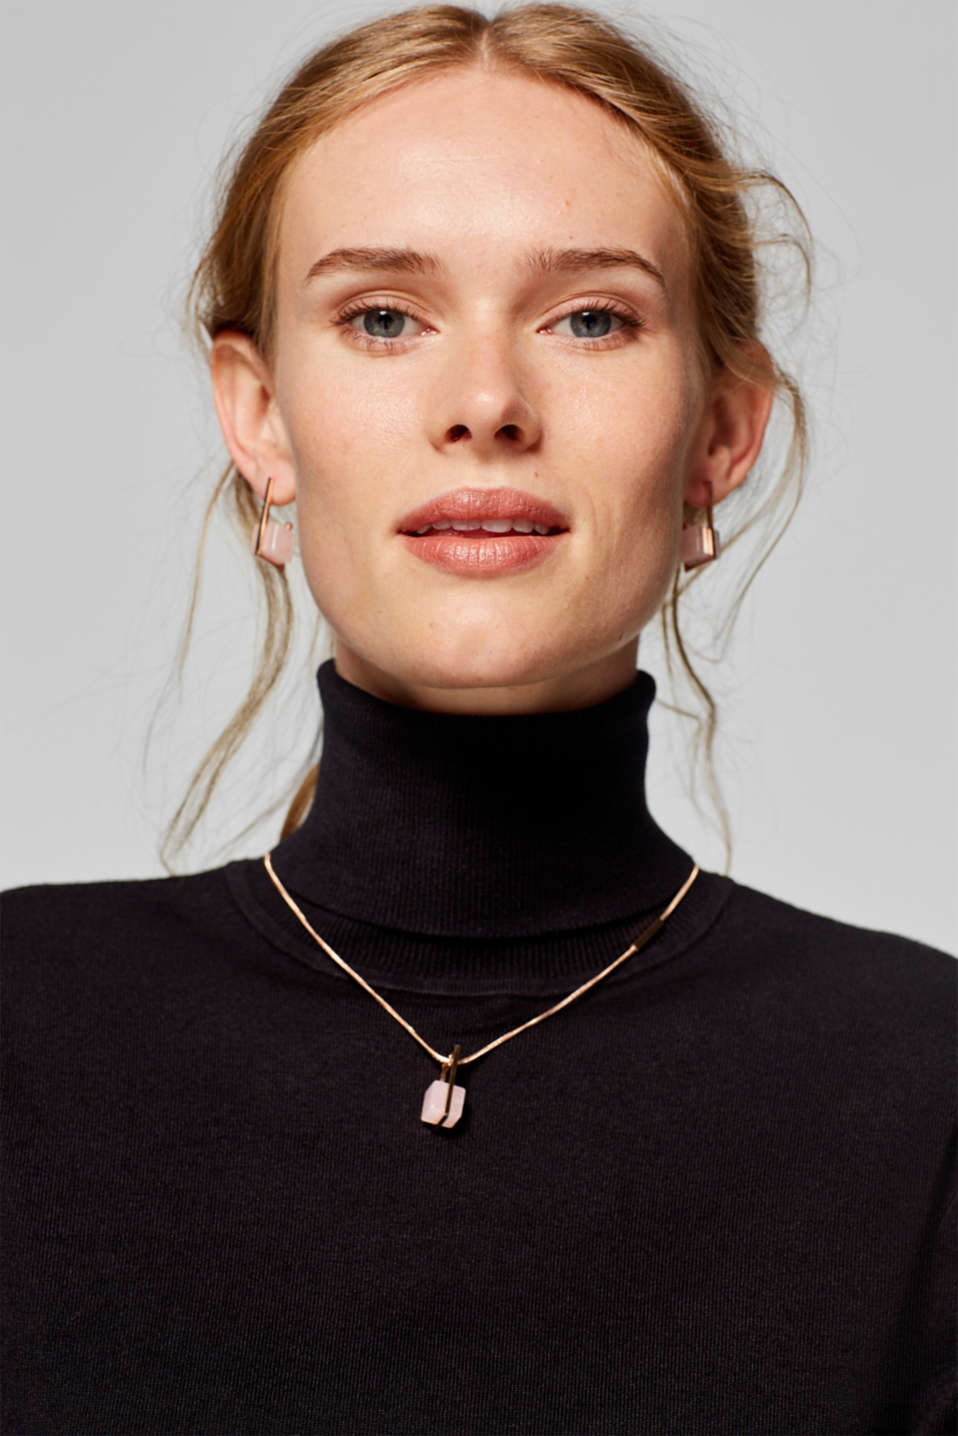 Stainless steel necklace with a gemstone pendant in a marble look, ROSEGOLD, detail image number 2